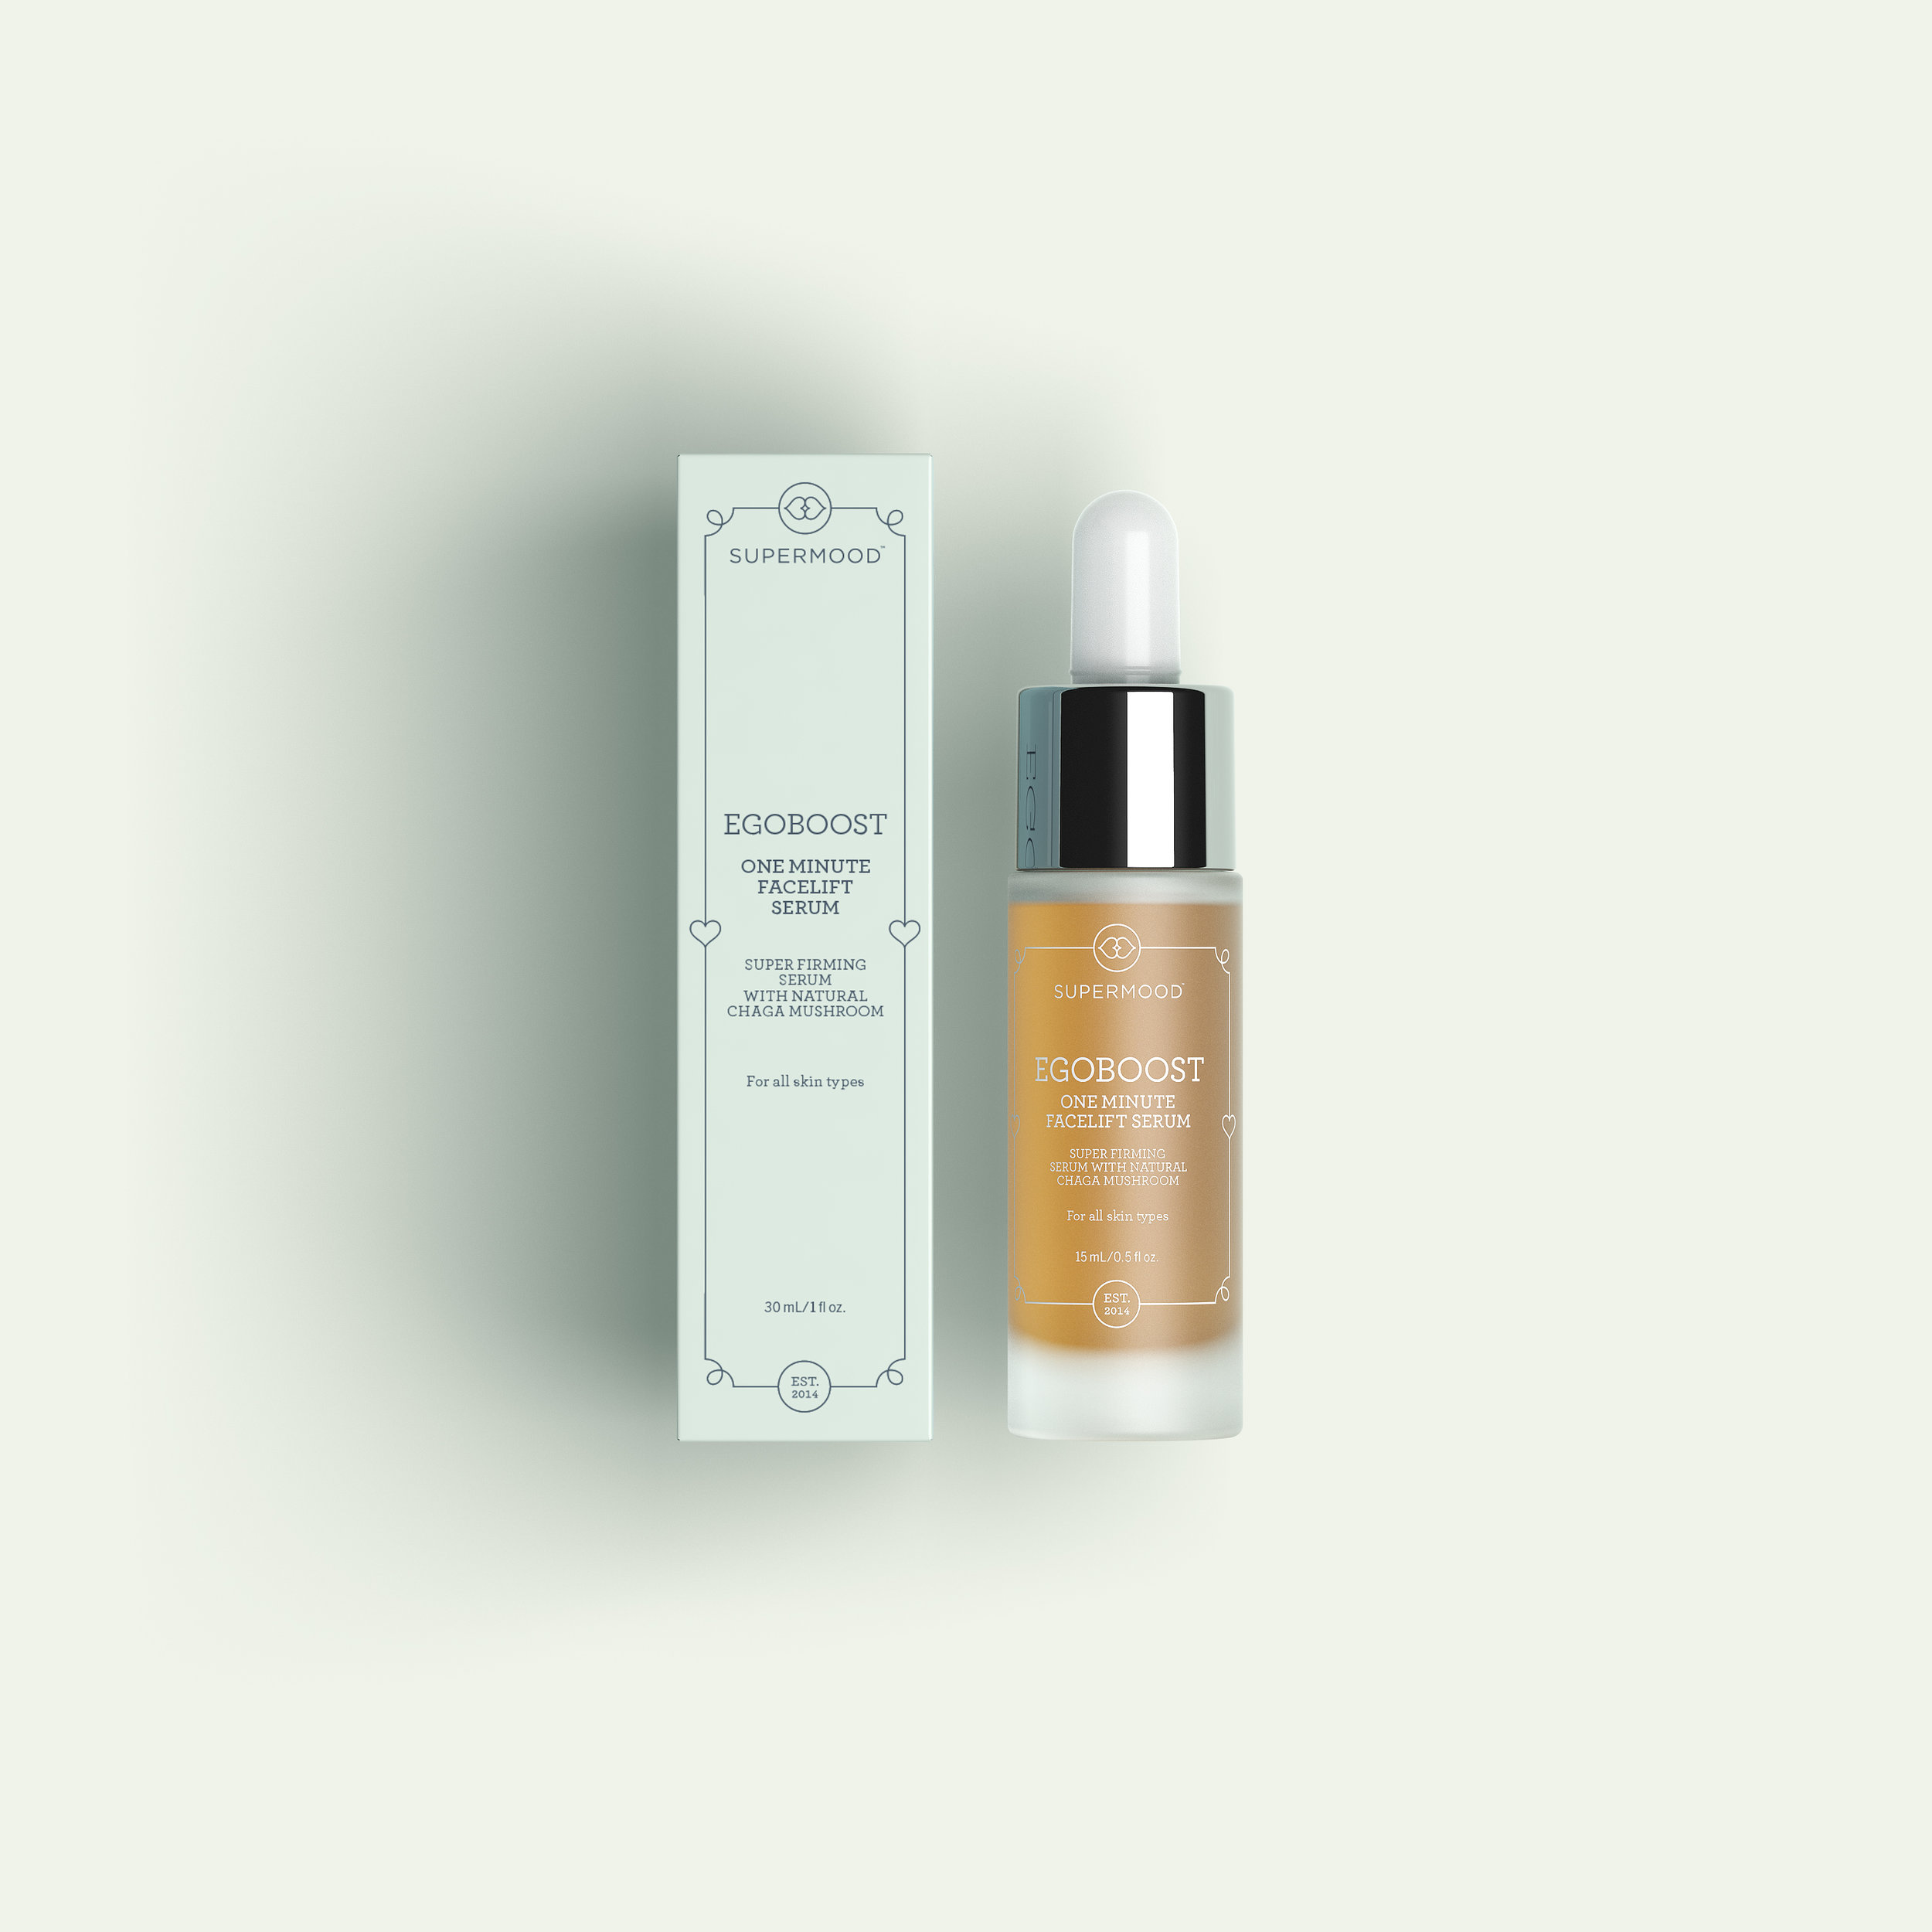 Egoboost: 1-minute facelift serum with Chaga.